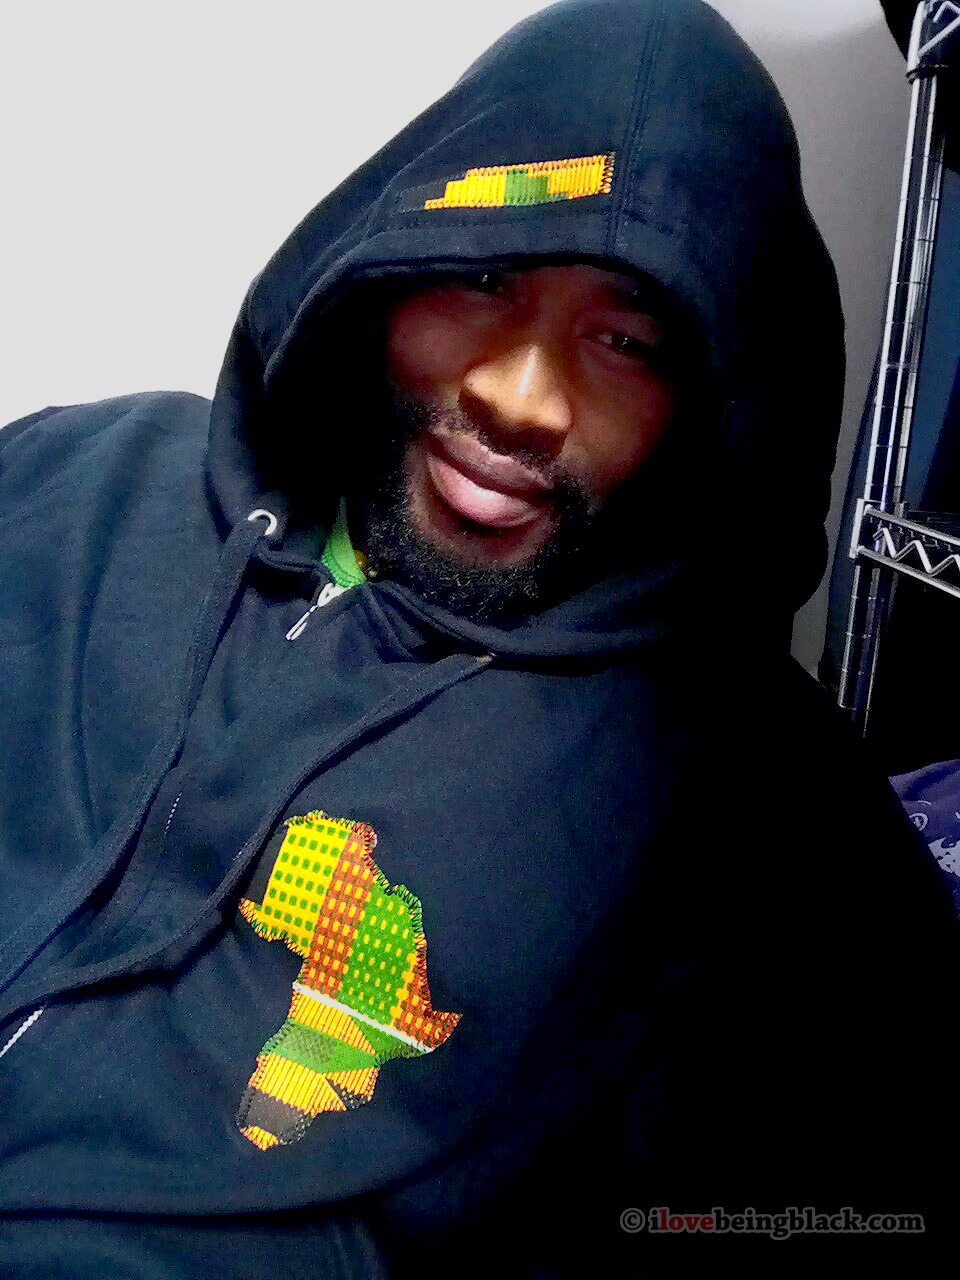 iLBB handmade AfriHoodies, the best Hoodie on earth